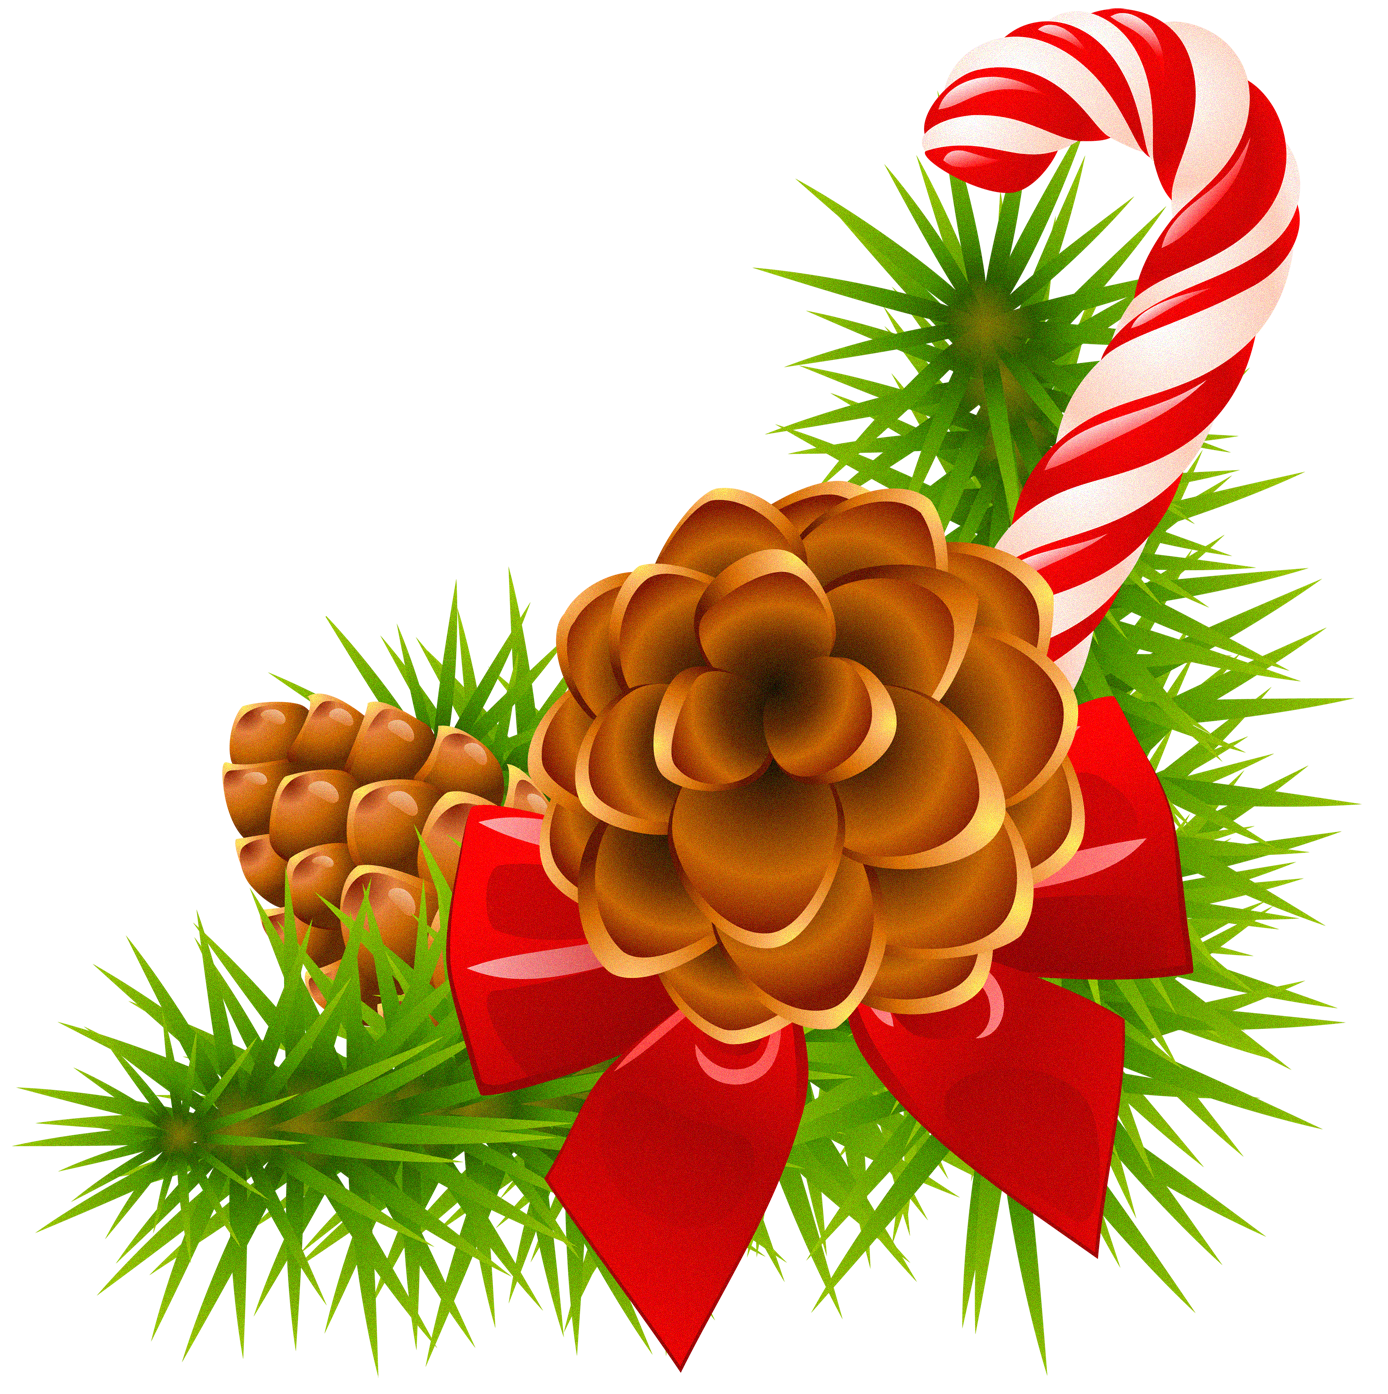 Christmas greenery png. Pine branch with cones